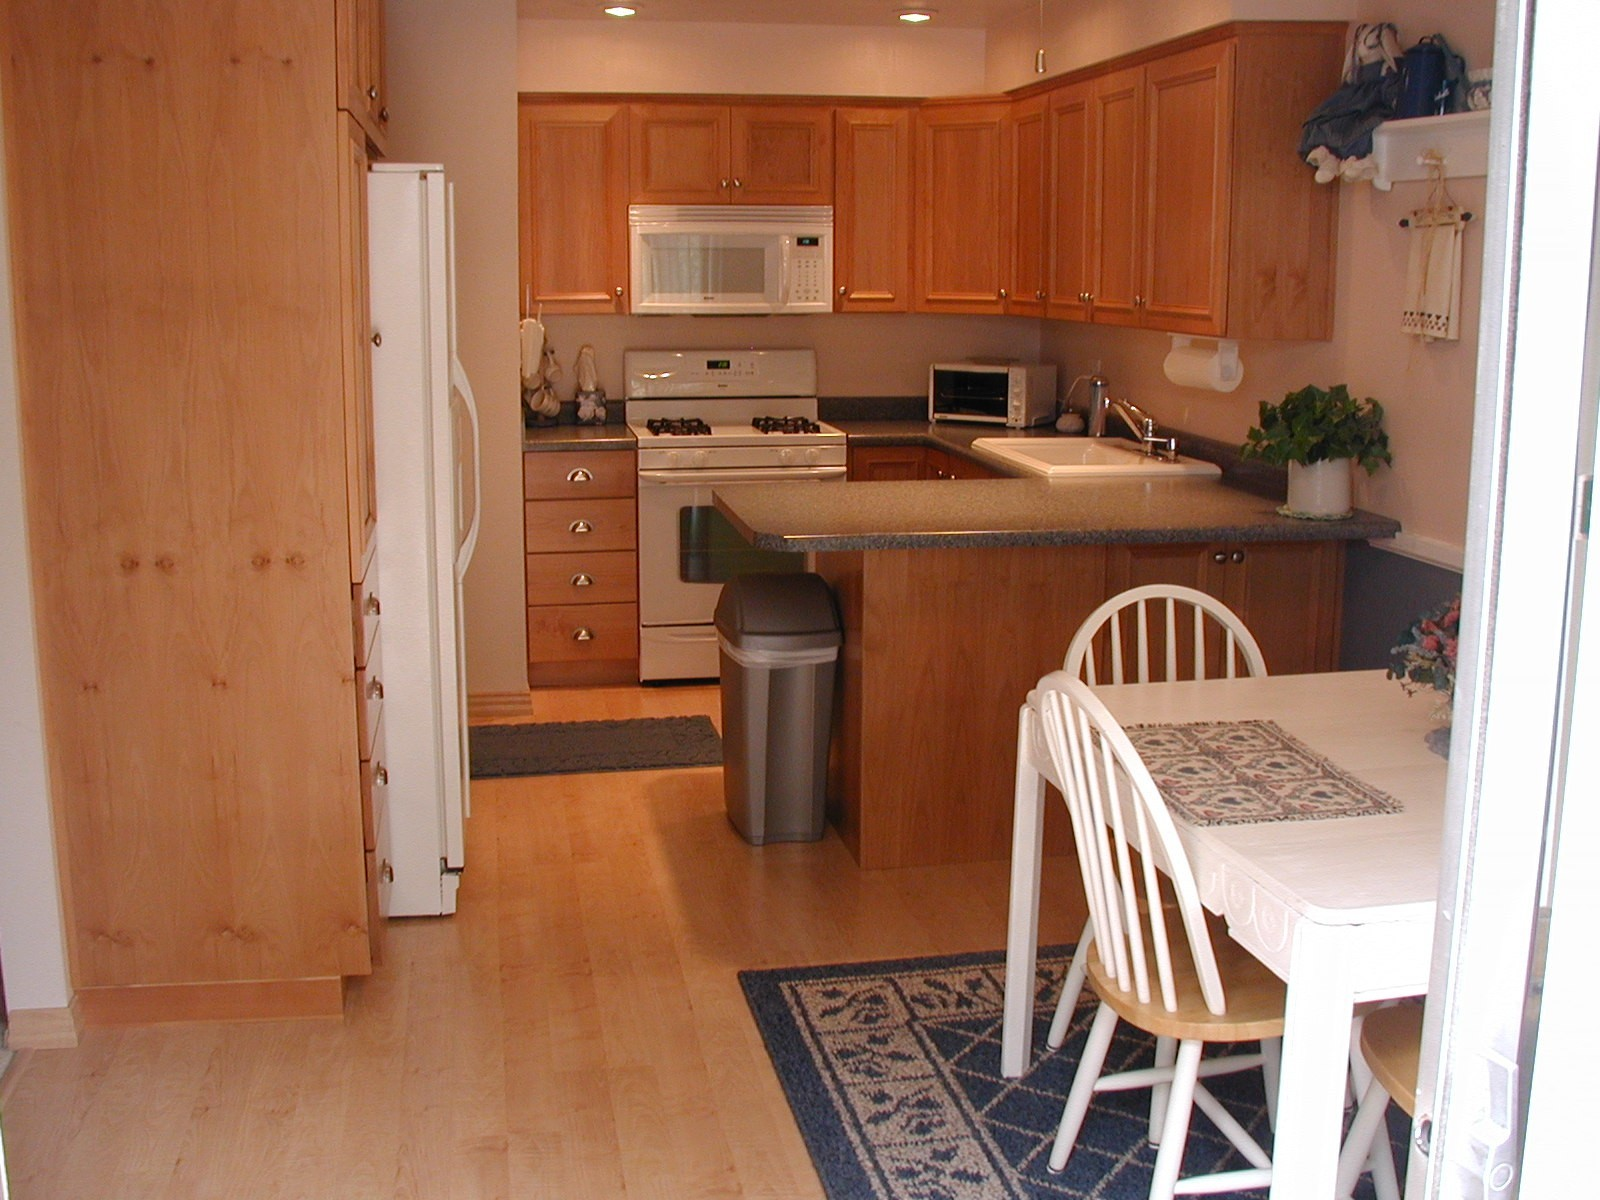 ... Color Wood Floors 3 Hardwood Floor In Kitchen Color Of Wood Floors  Kitchen 6